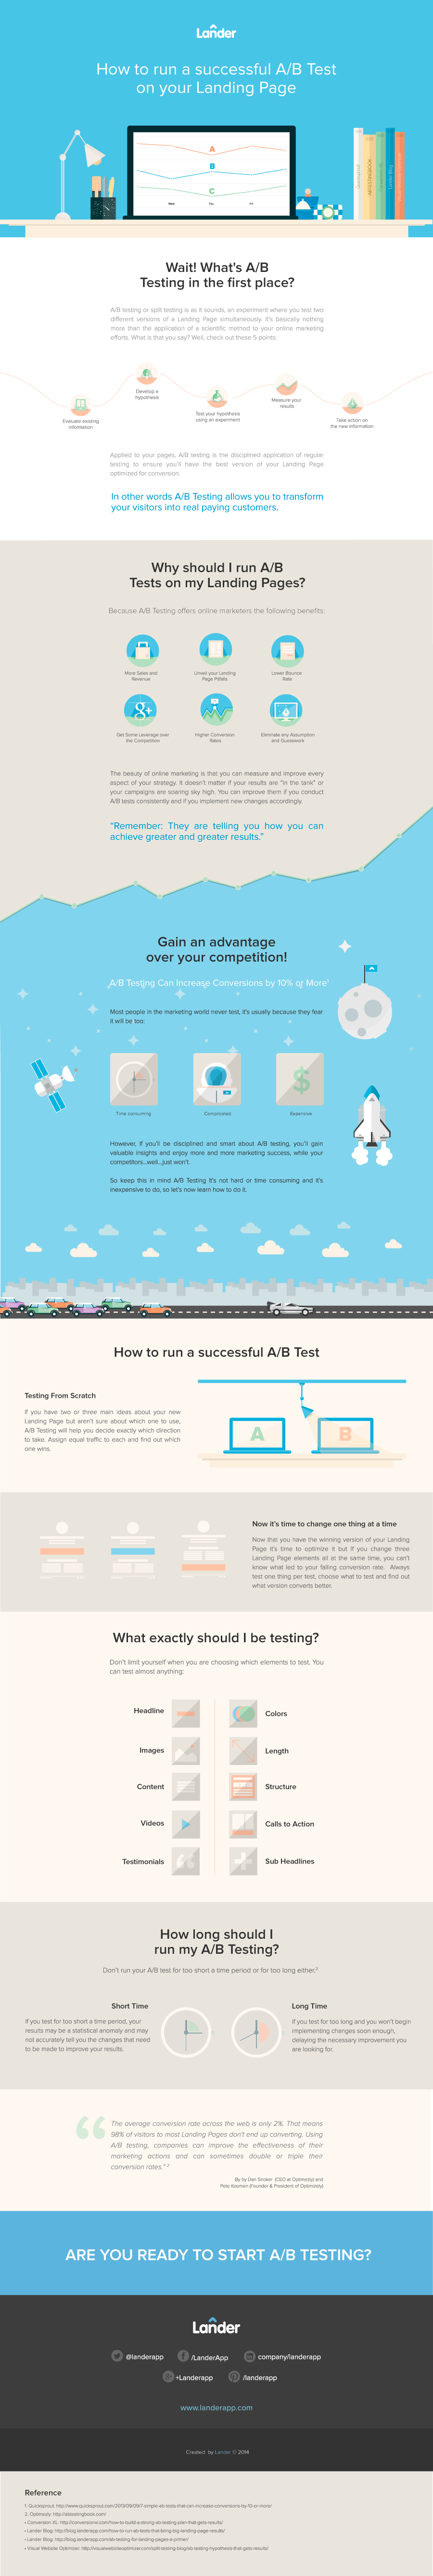 How to run a successful A/B test on your landing page - #infographic